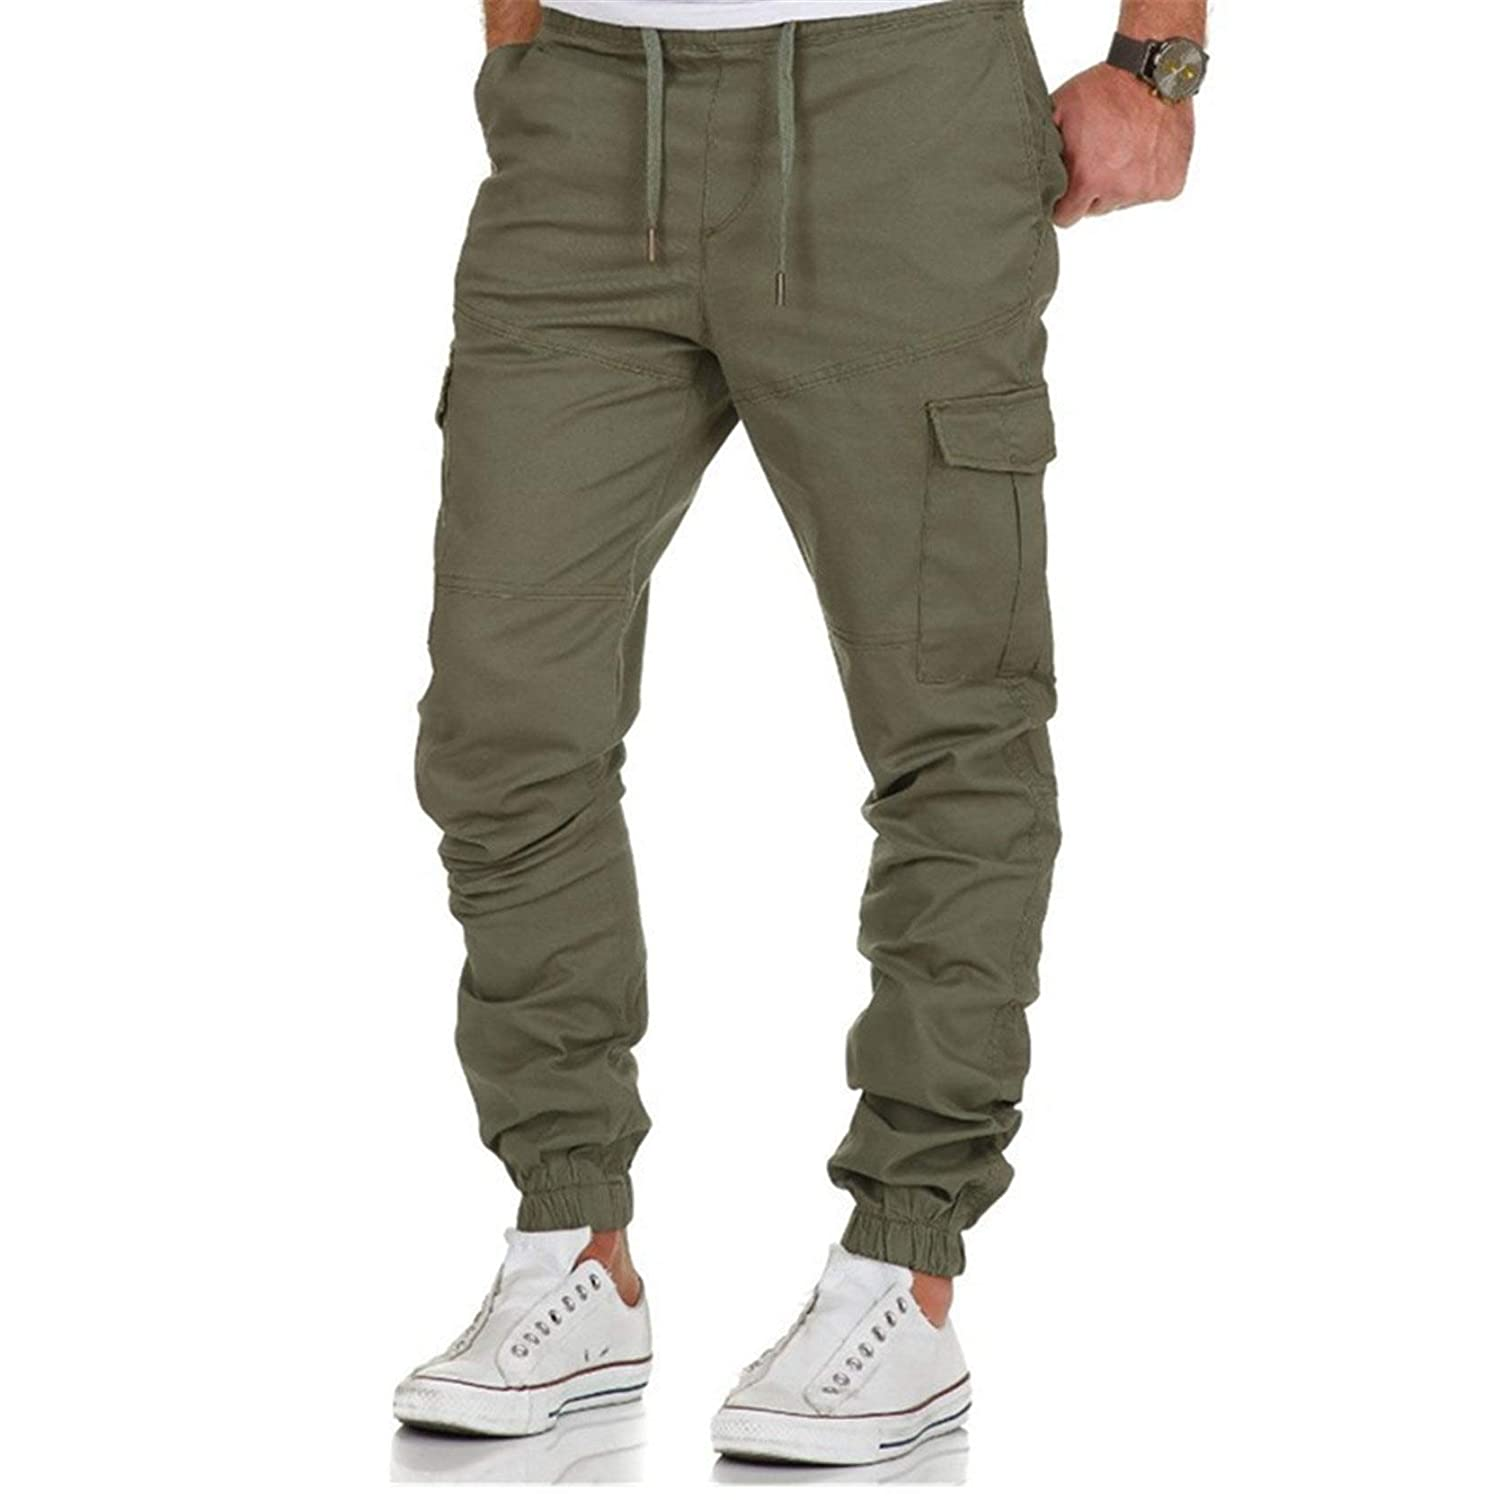 Men Cargo Long Pants Slim Fit Oklahoma City Mall Casual Trousers Ranking TOP2 Work Sports Jogger